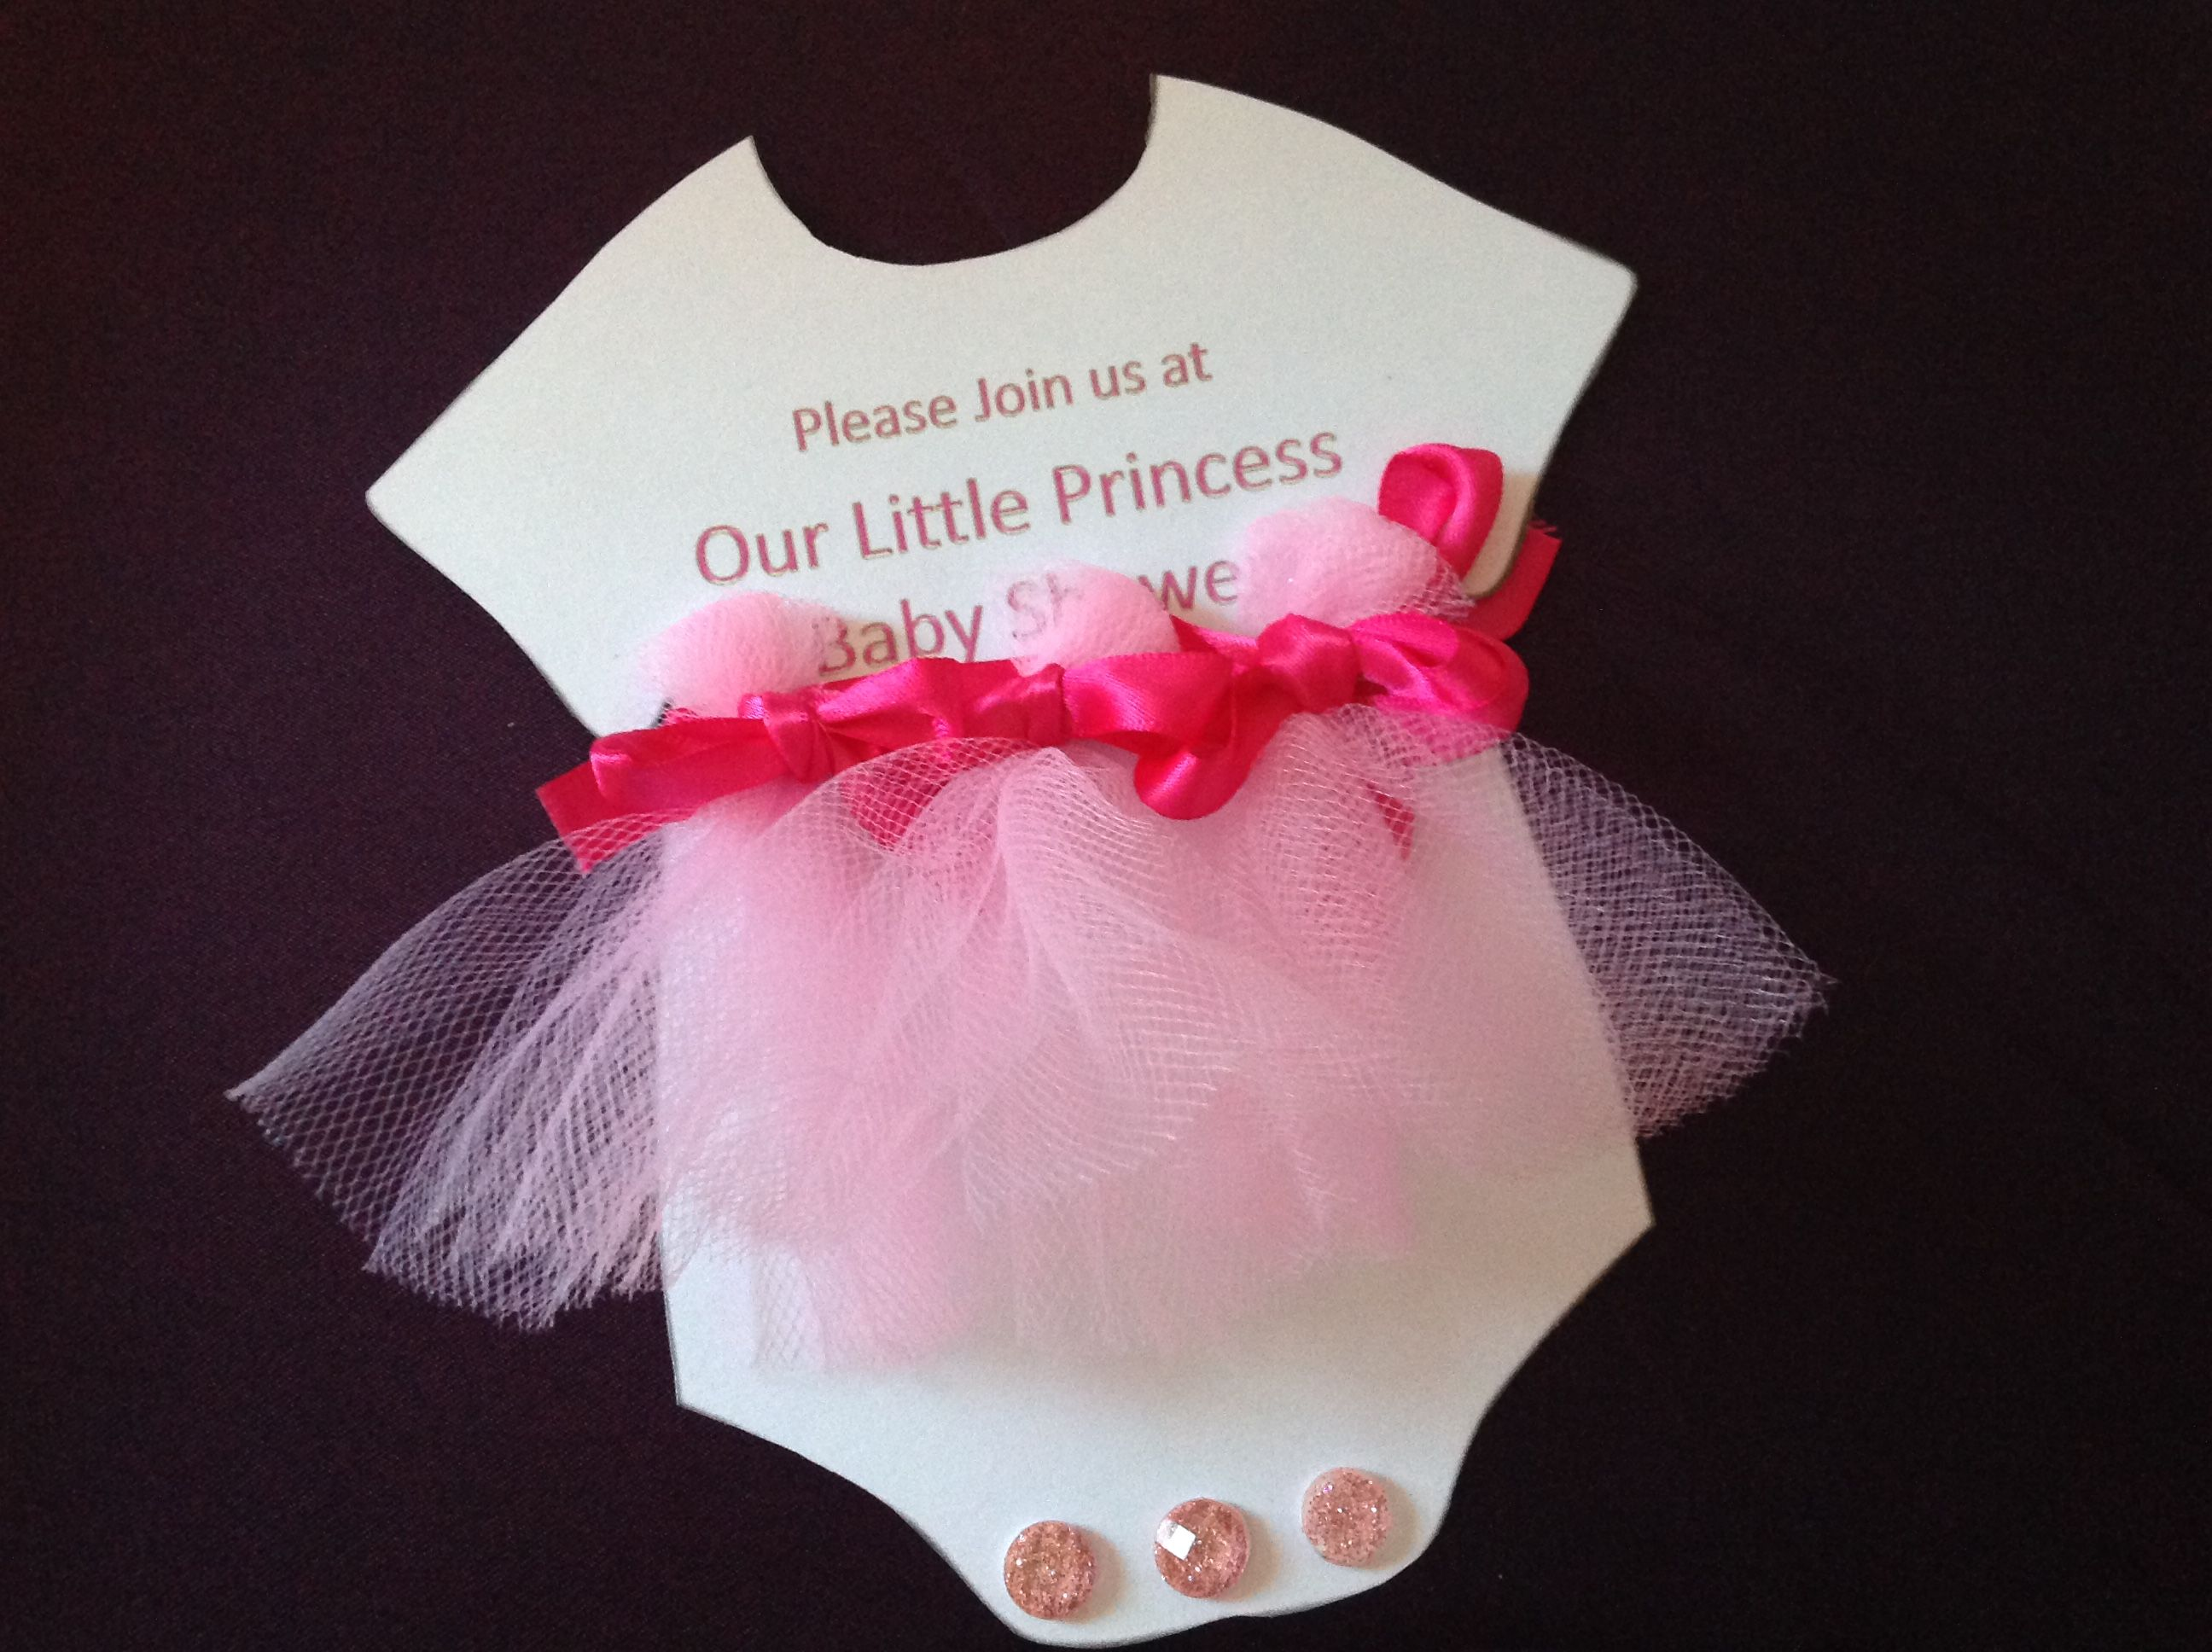 Tutu Cute Onesies Baby Shower Invitation By Ptree Design, Llc